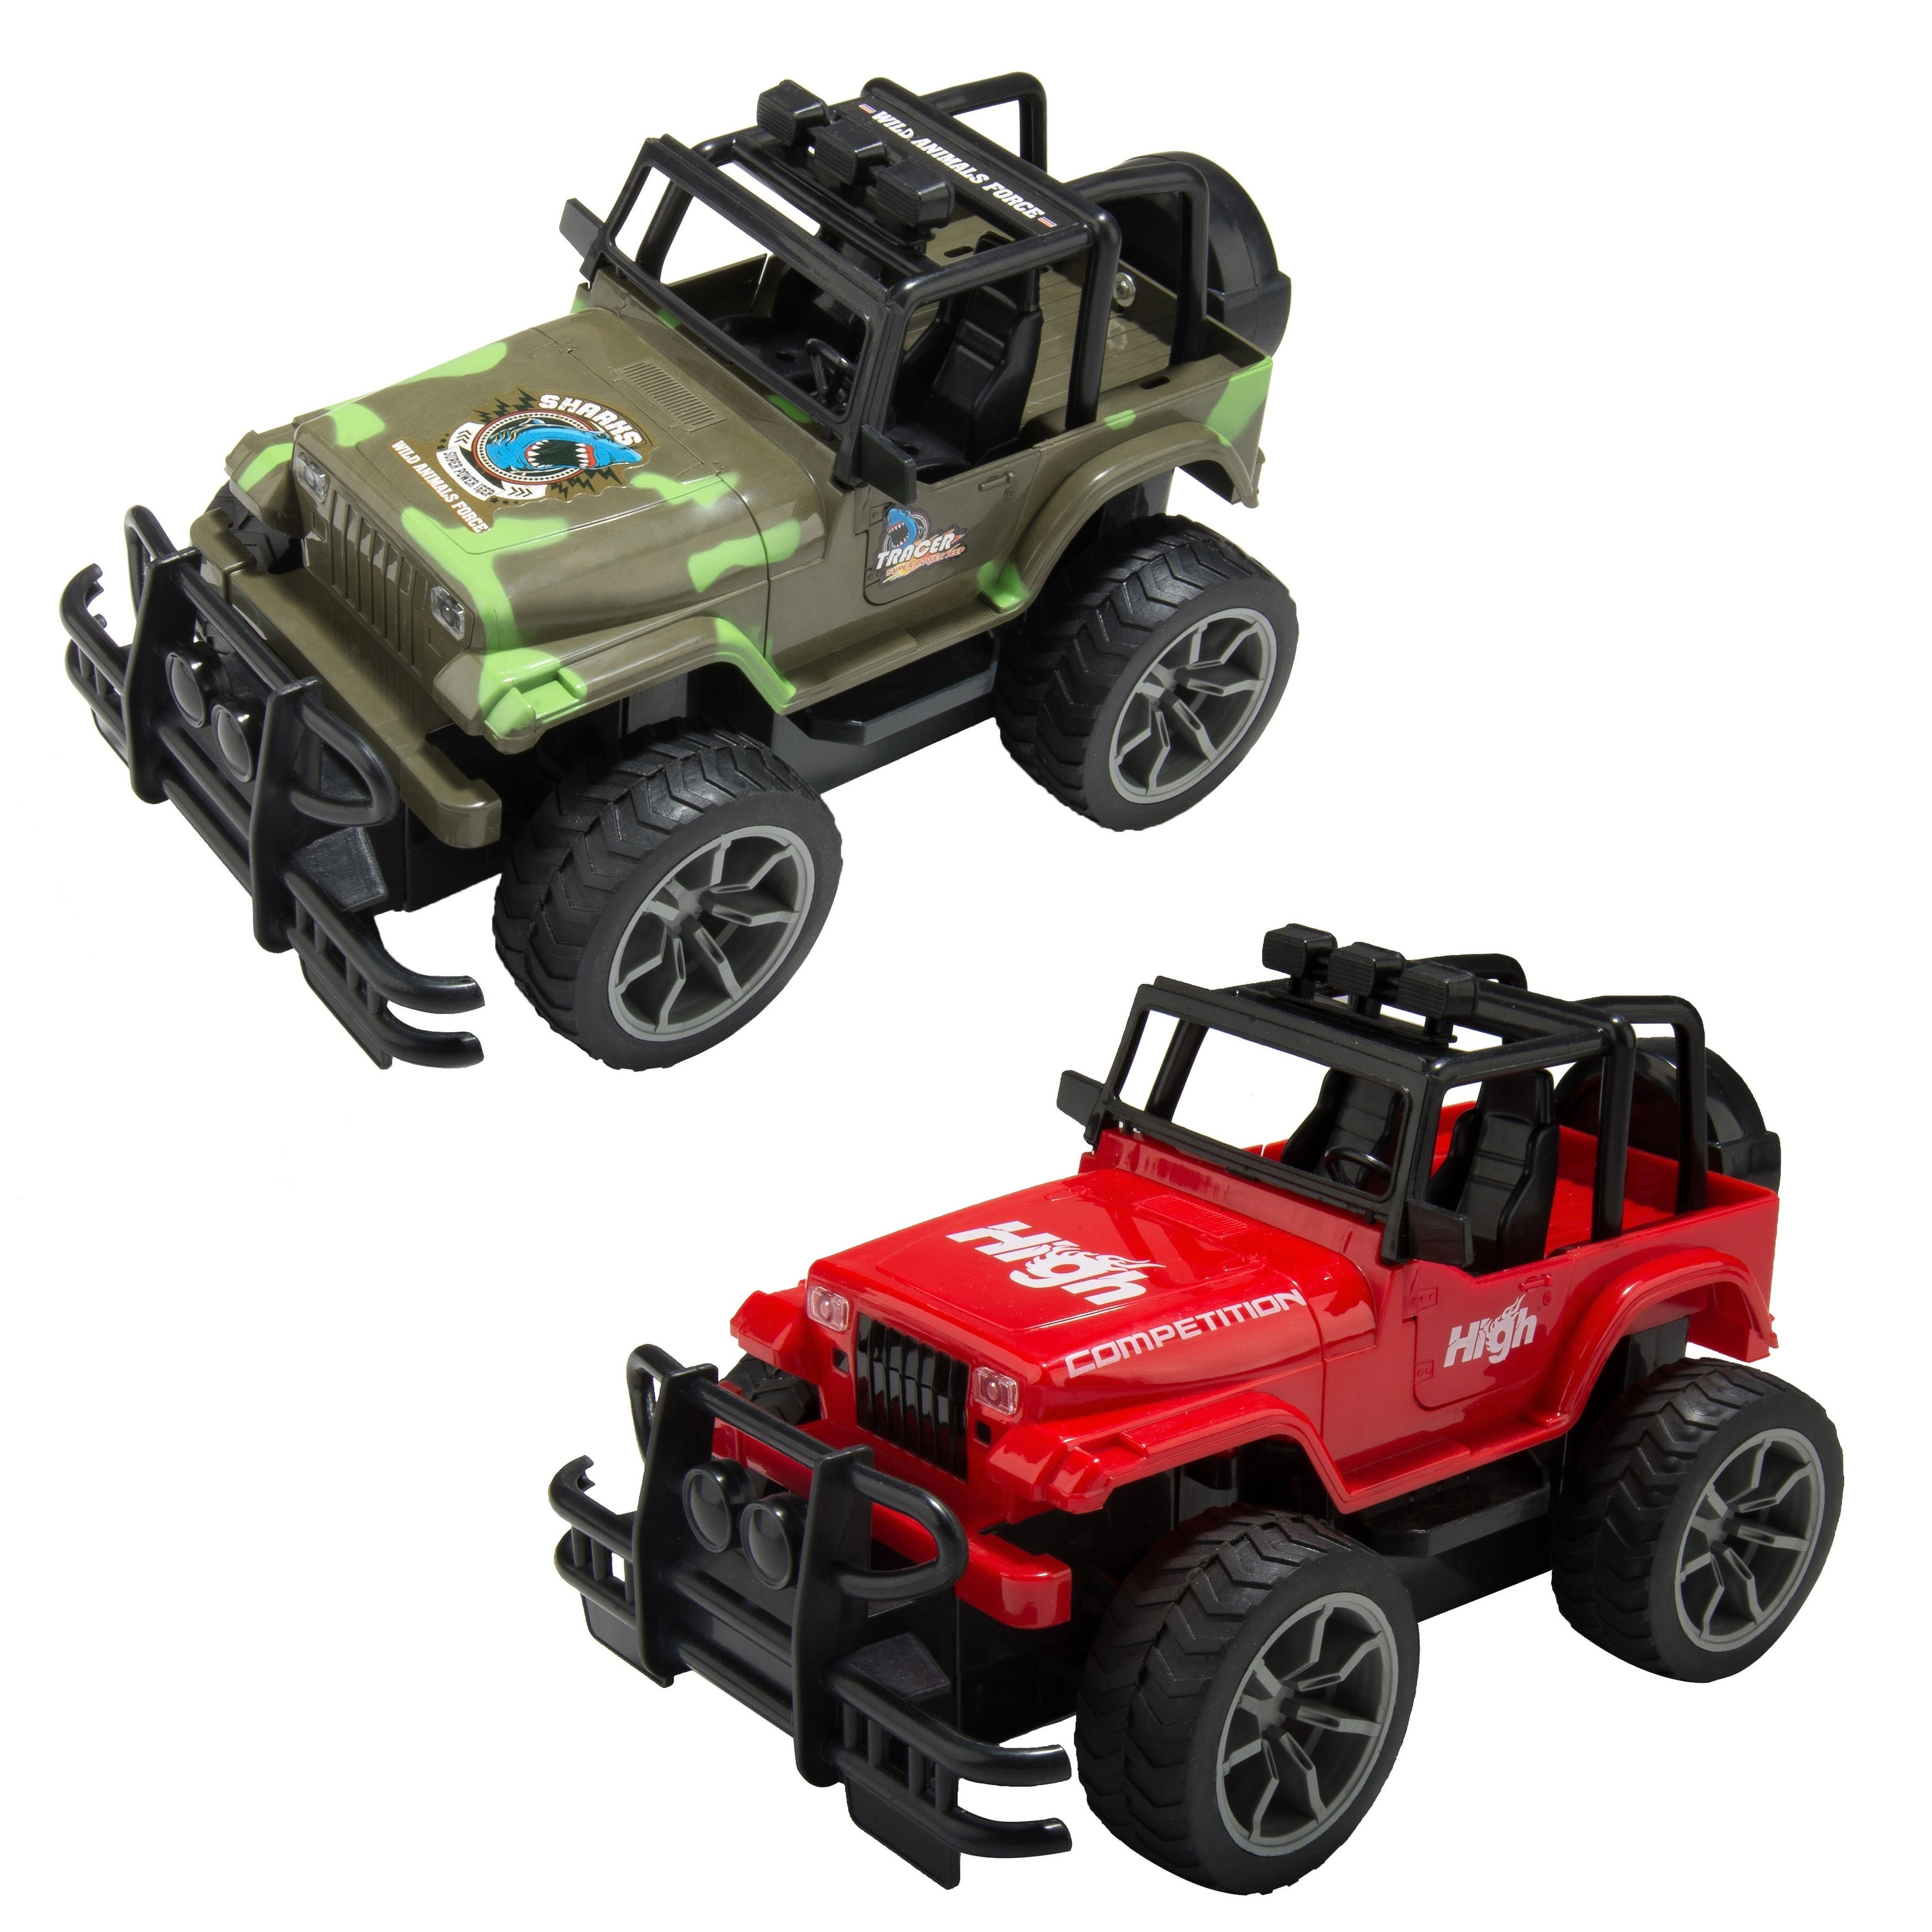 Remote Control Car Rc Crawler Trucks High Speed Off Road Jeep Overstock 29130104 8 11 Years Unisex Red